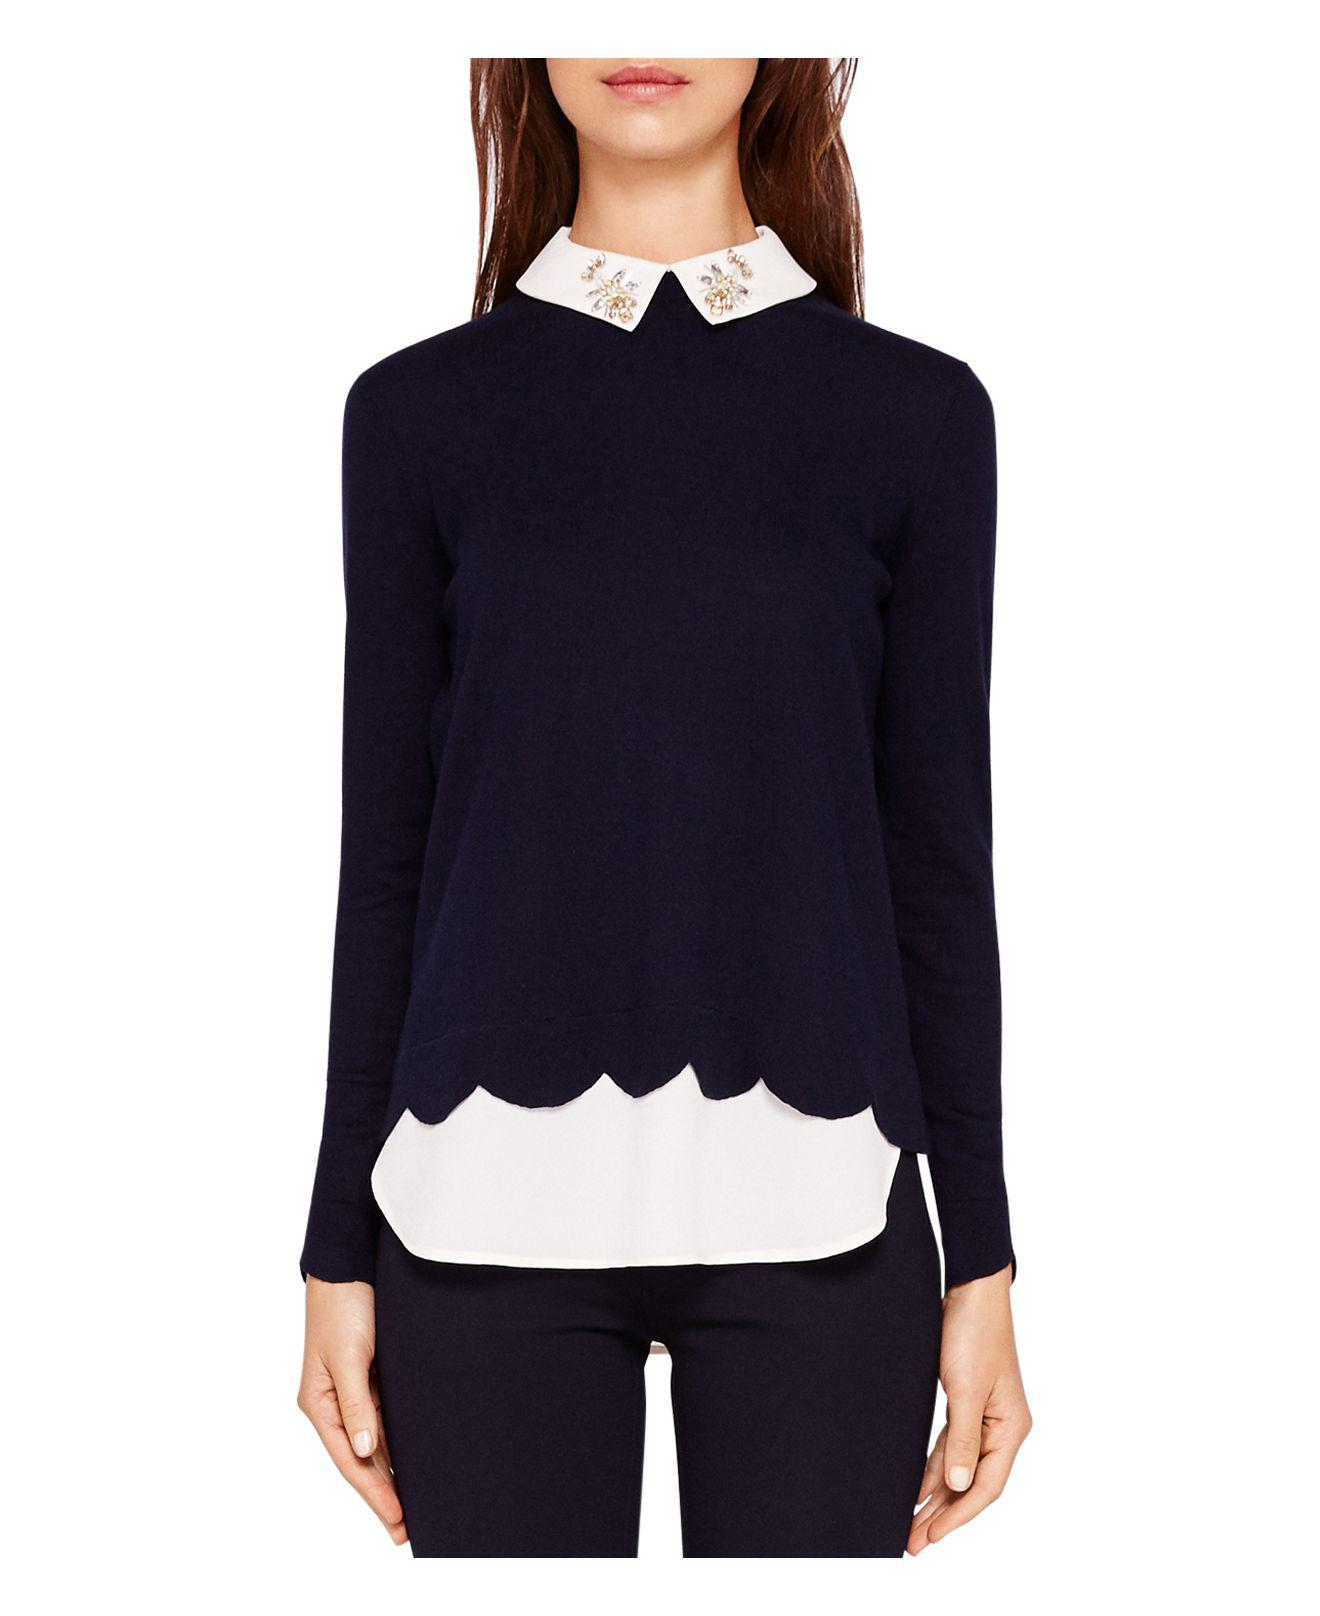 76550f8e1b54 Lyst - Ted Baker Suzaine Layered-look Sweater in Blue